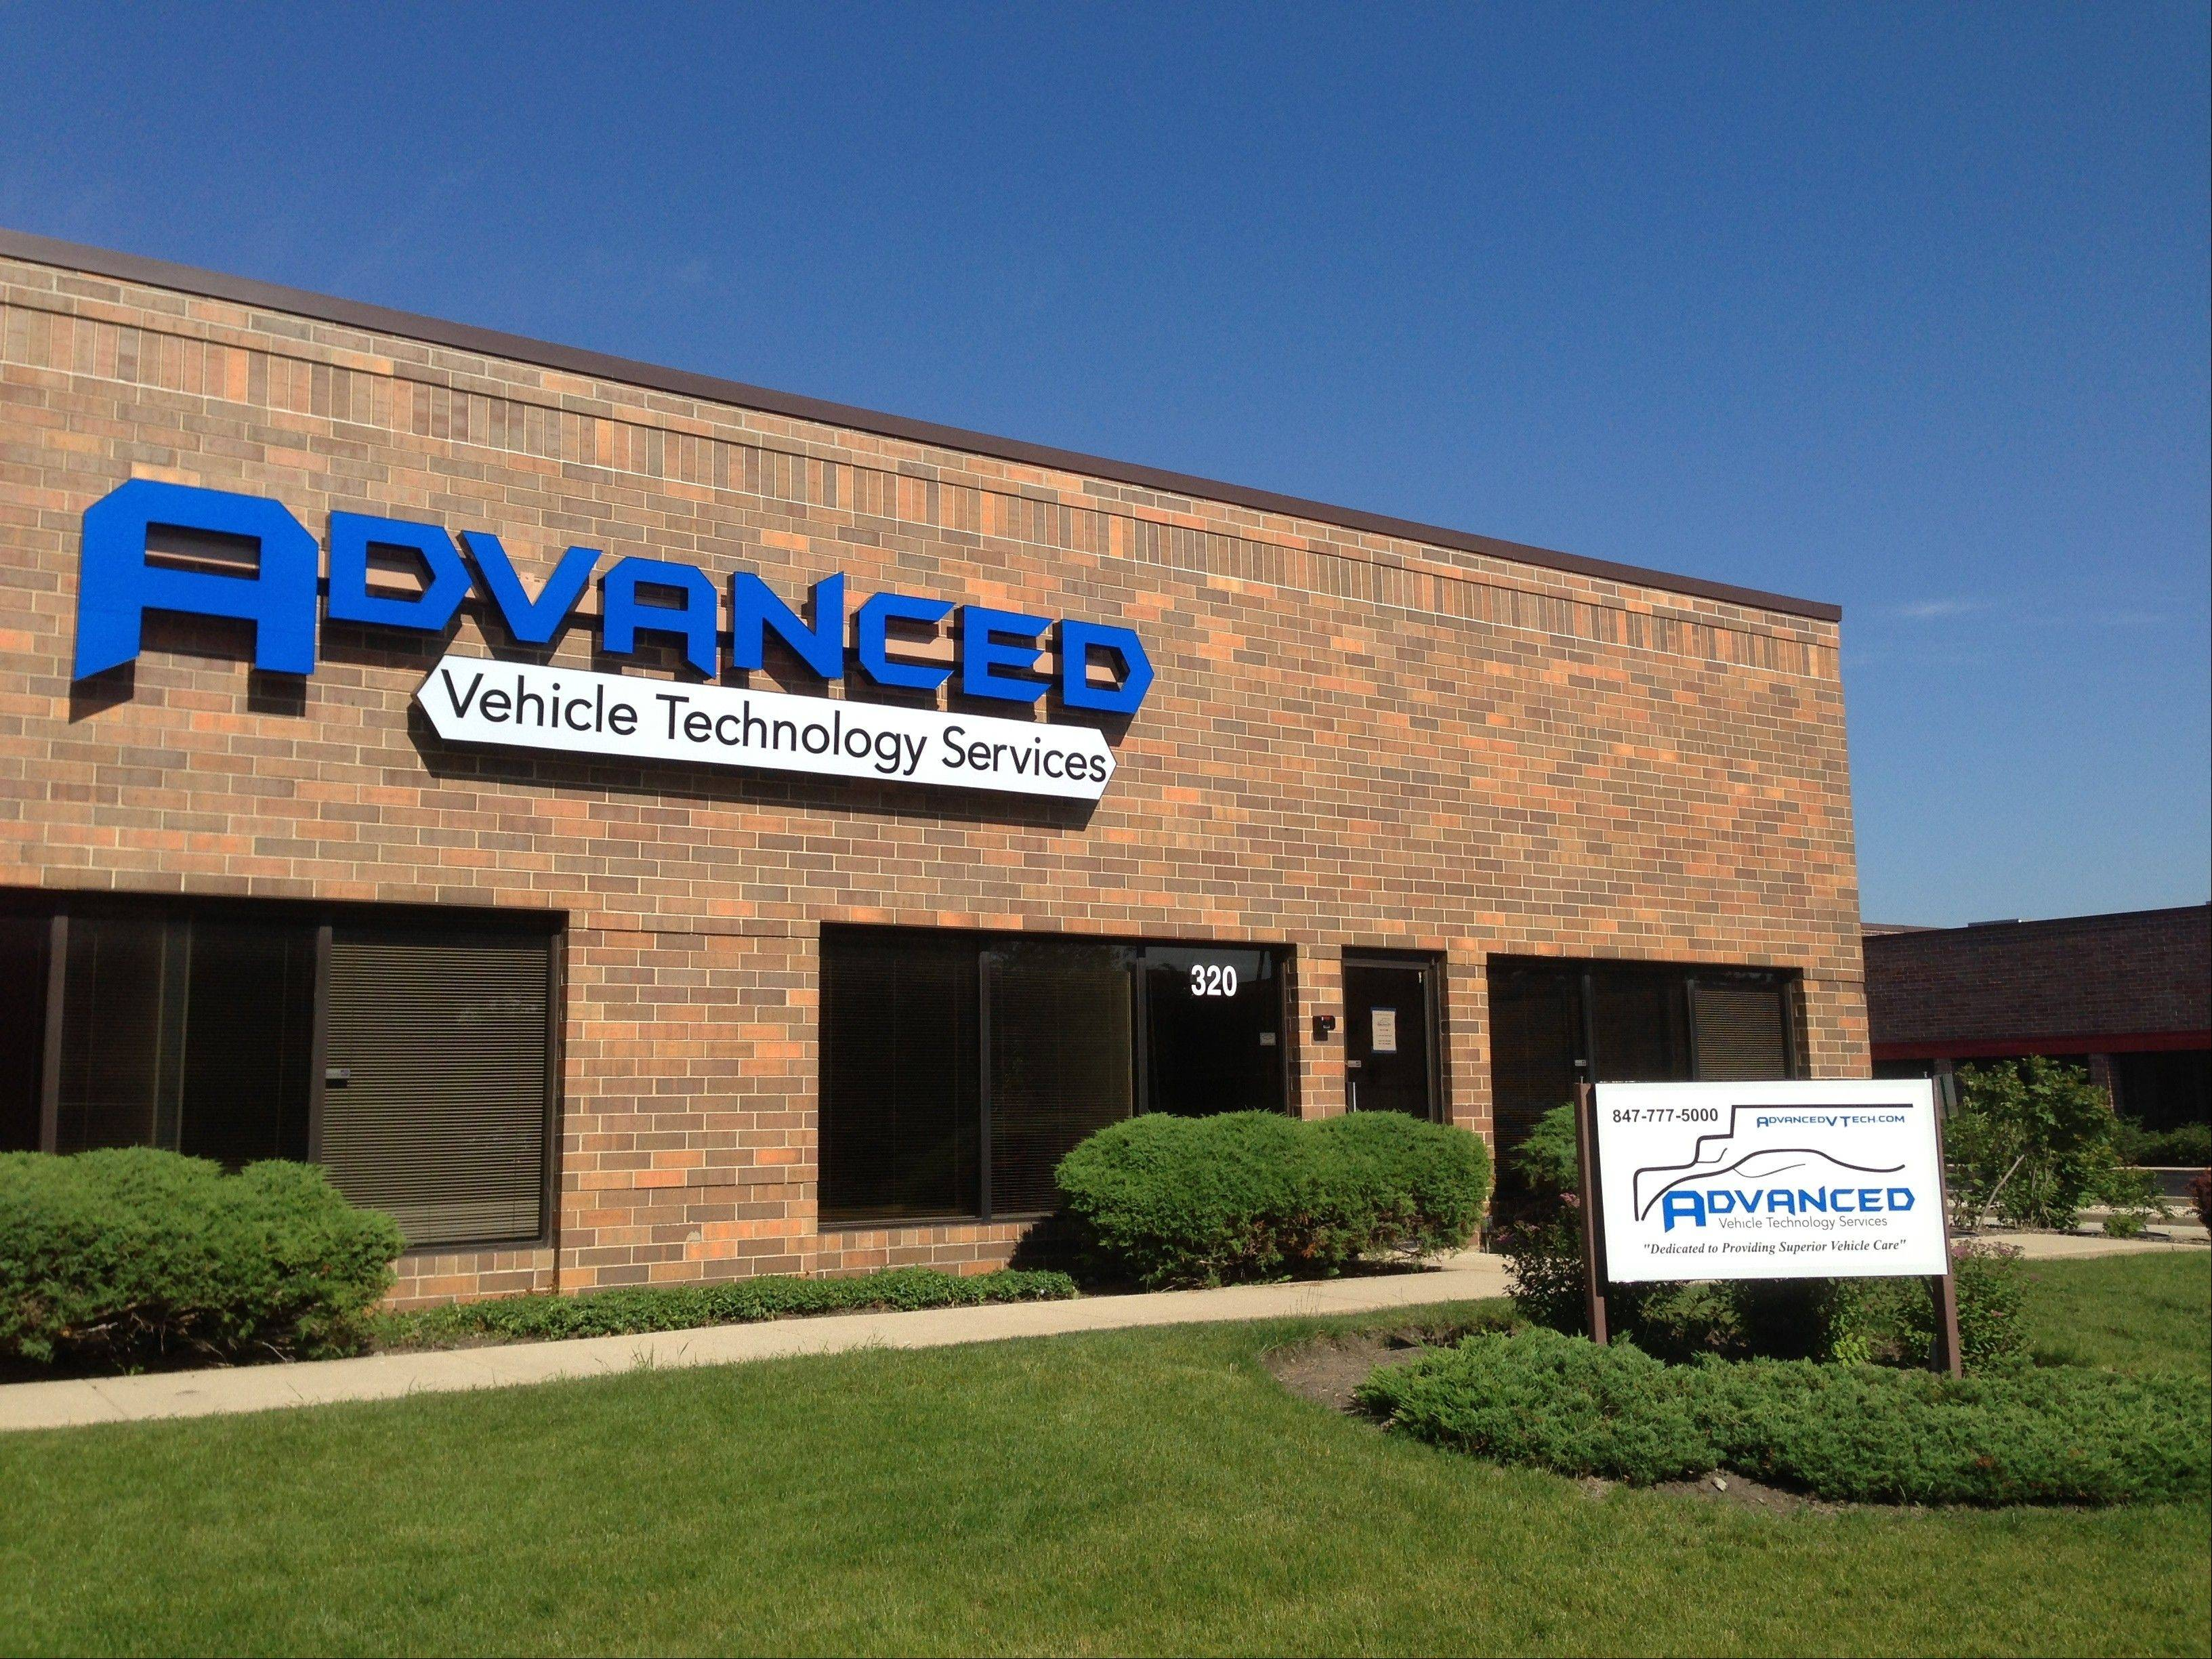 Advanced Vehicle Technology Services Inc. in Buffalo Grove.